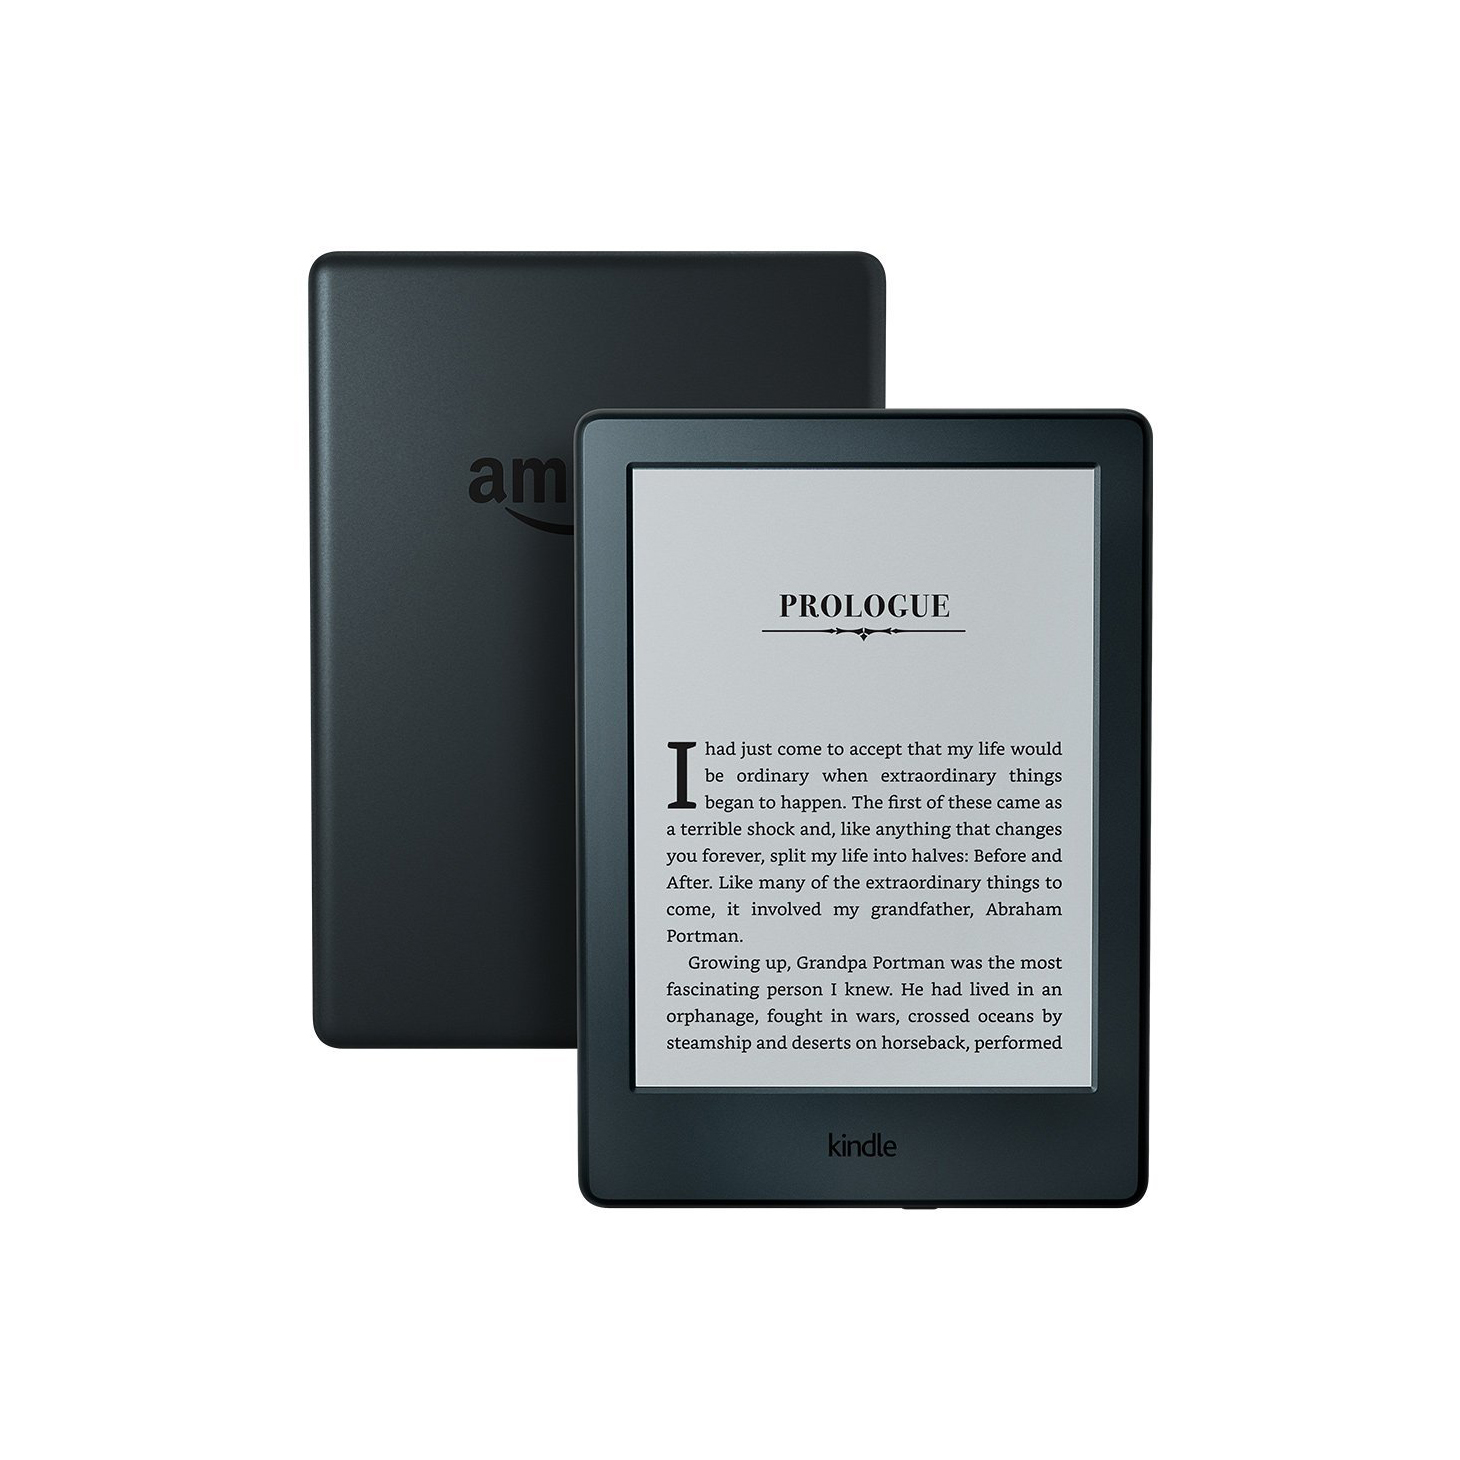 Amazon Kindle + Preloaded Books